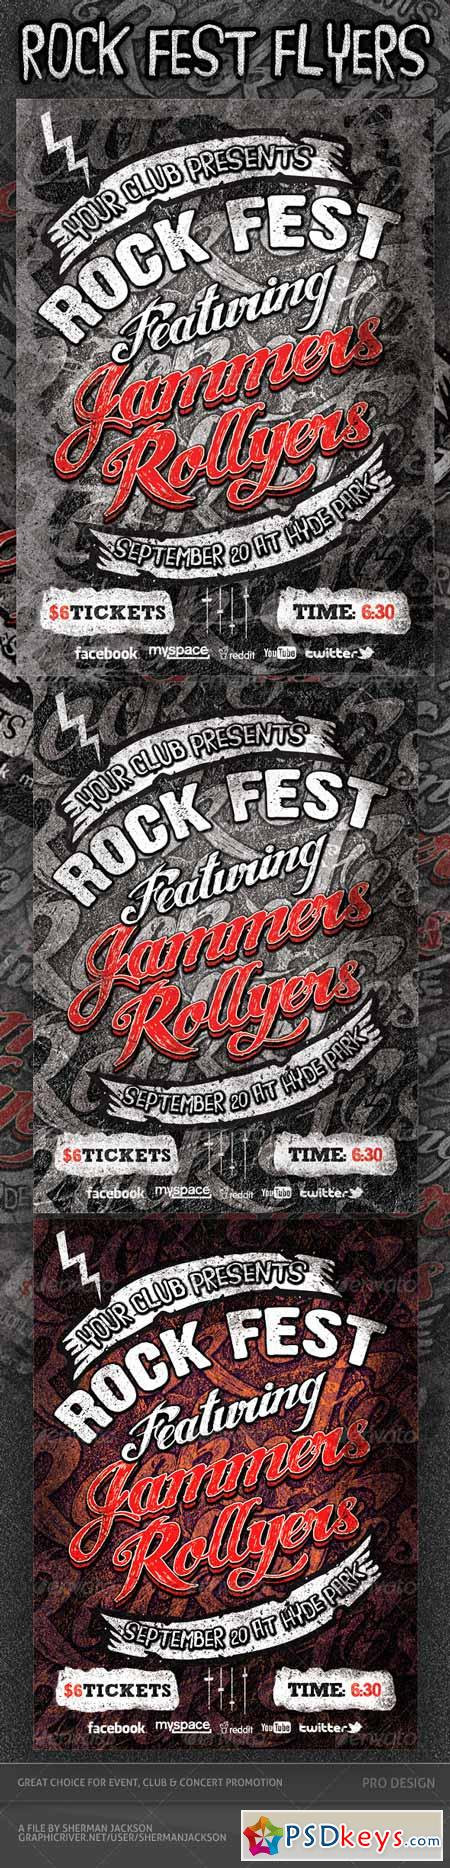 Rock Fest Typographic Flyer PSD Template 3009091